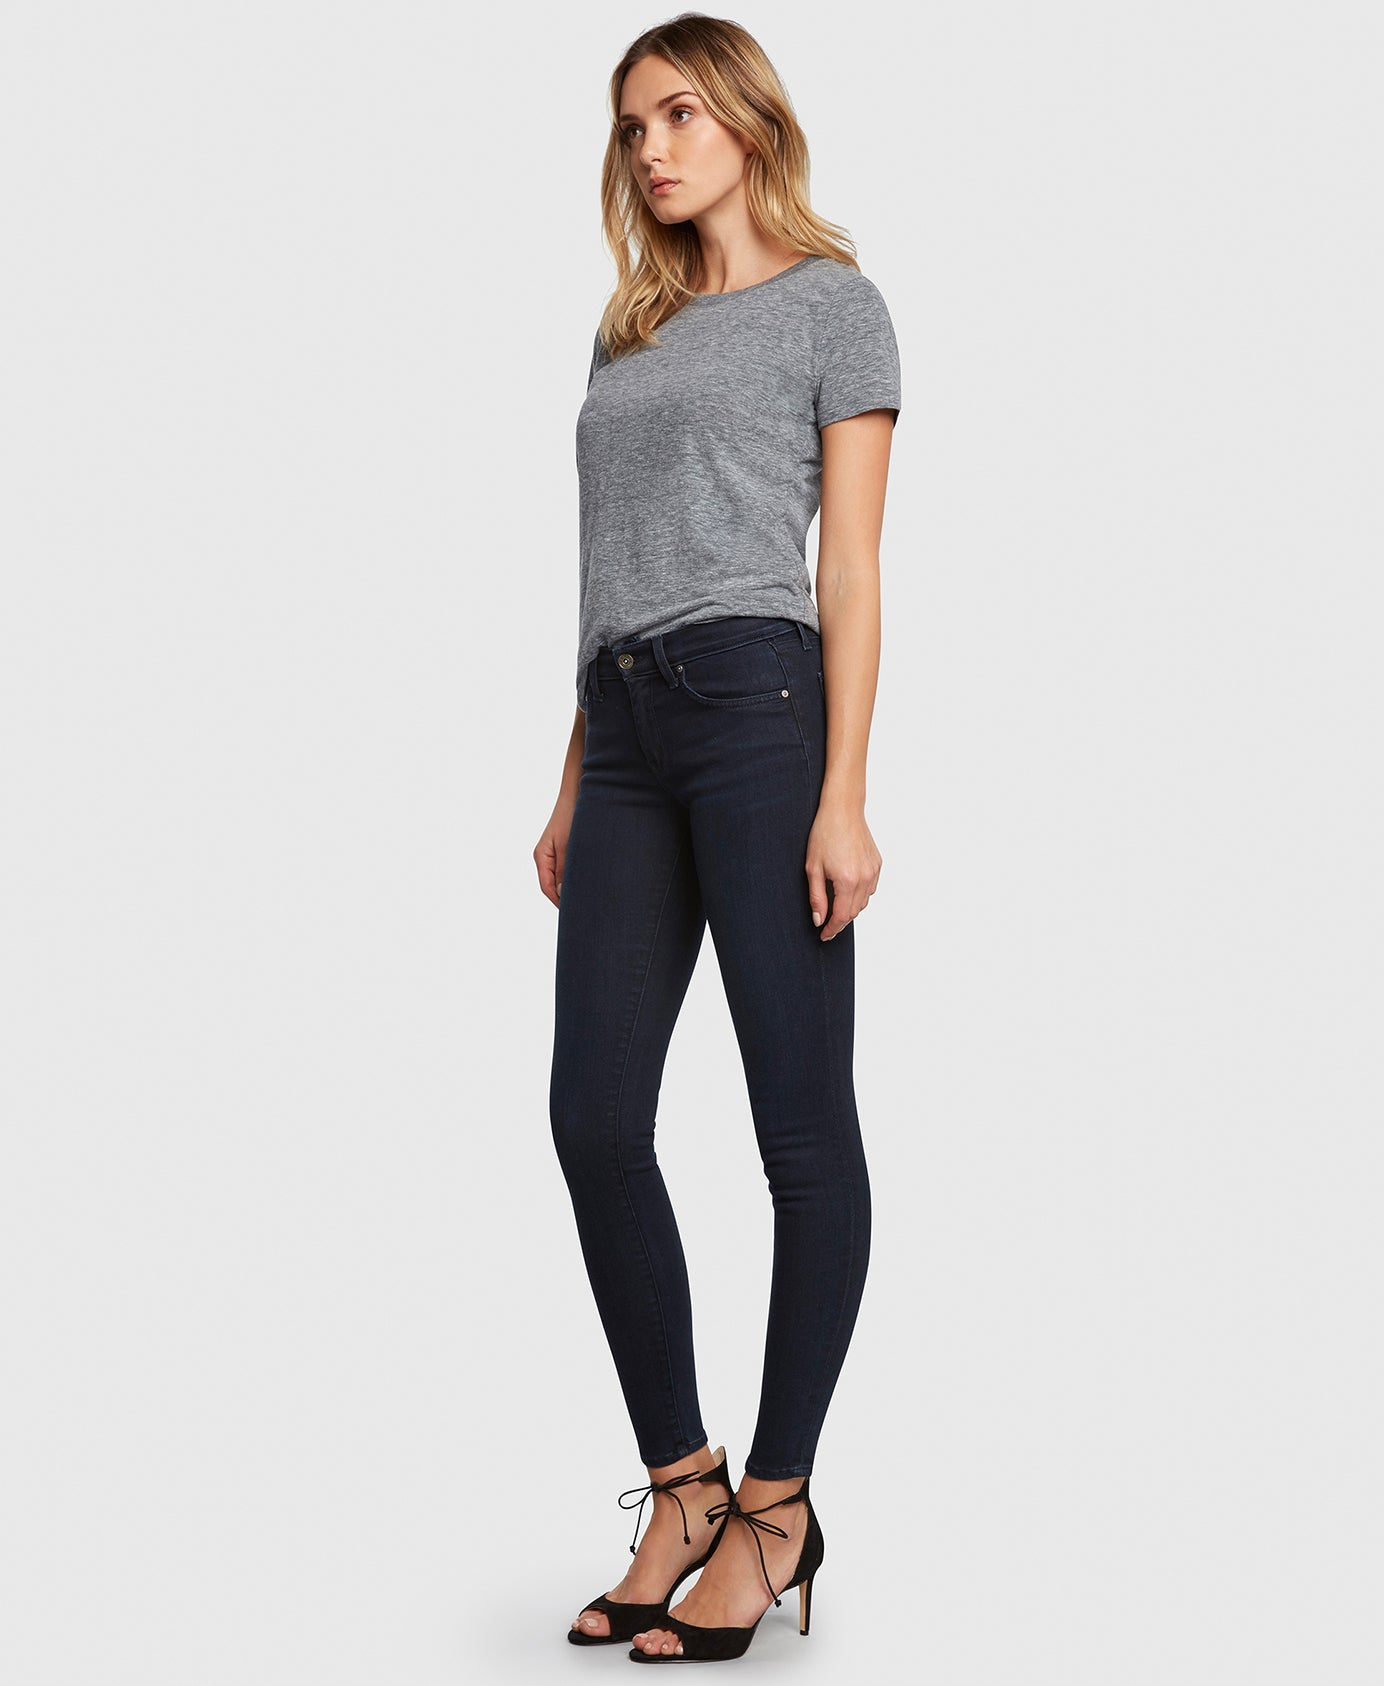 Principle DREAMER in At Last dark wash skinny jeans side